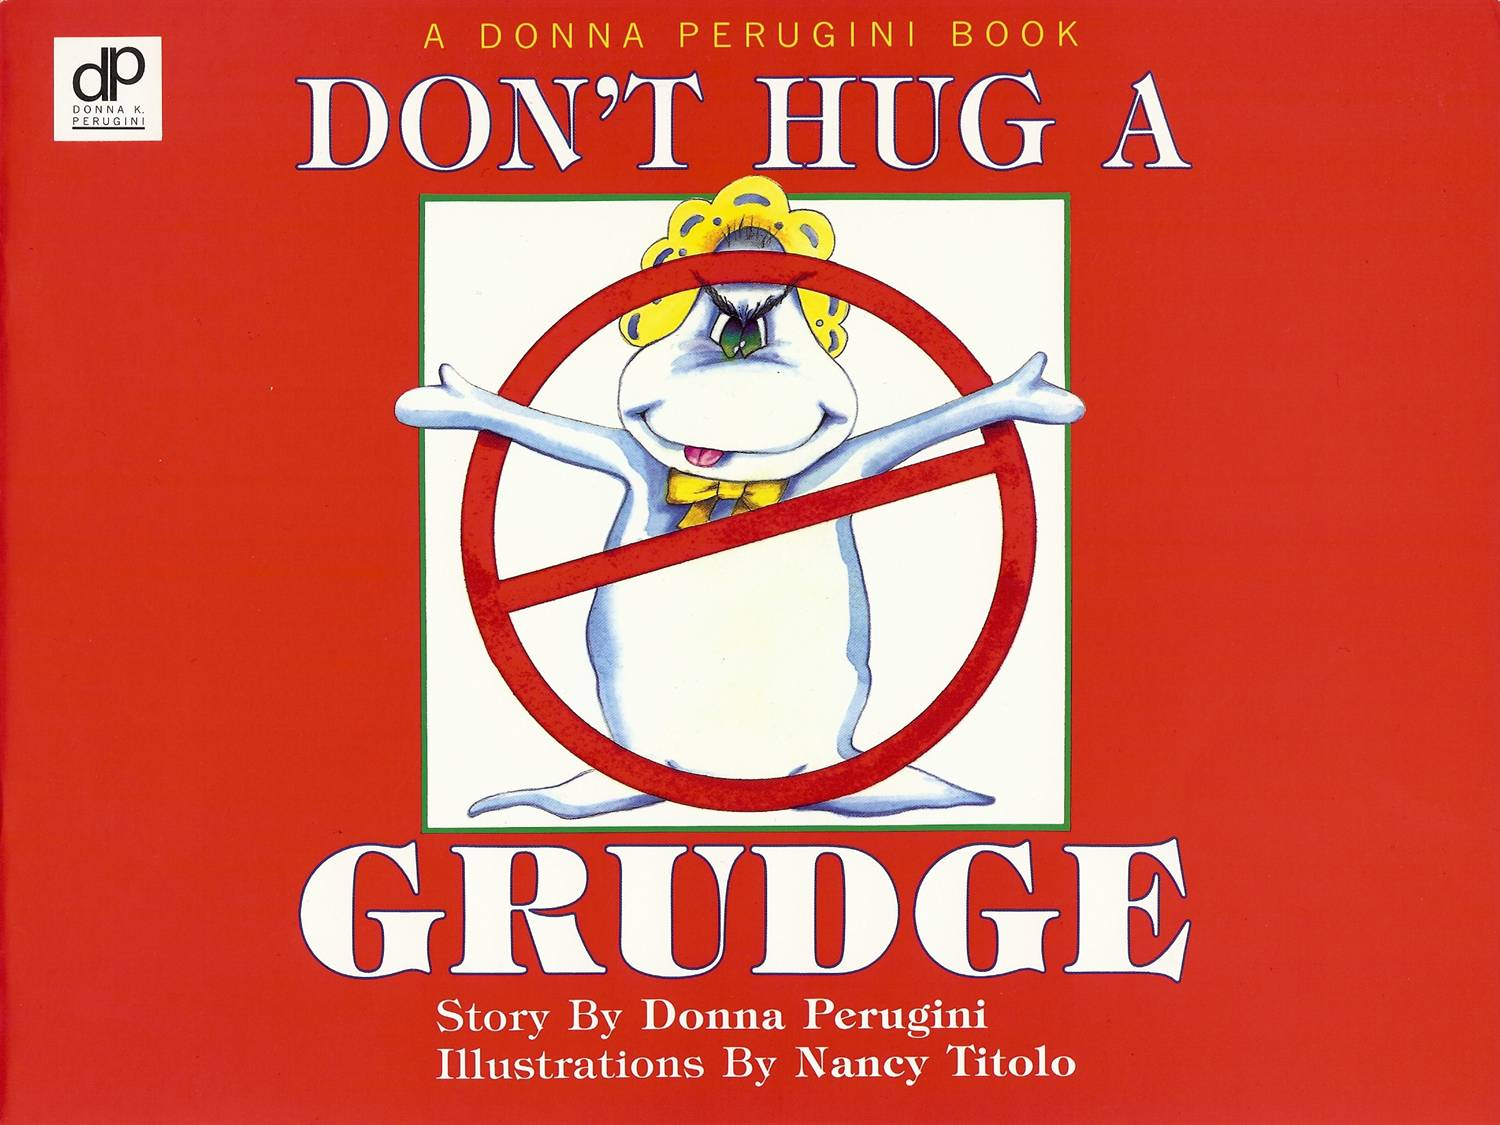 Don't Hug A Grudge